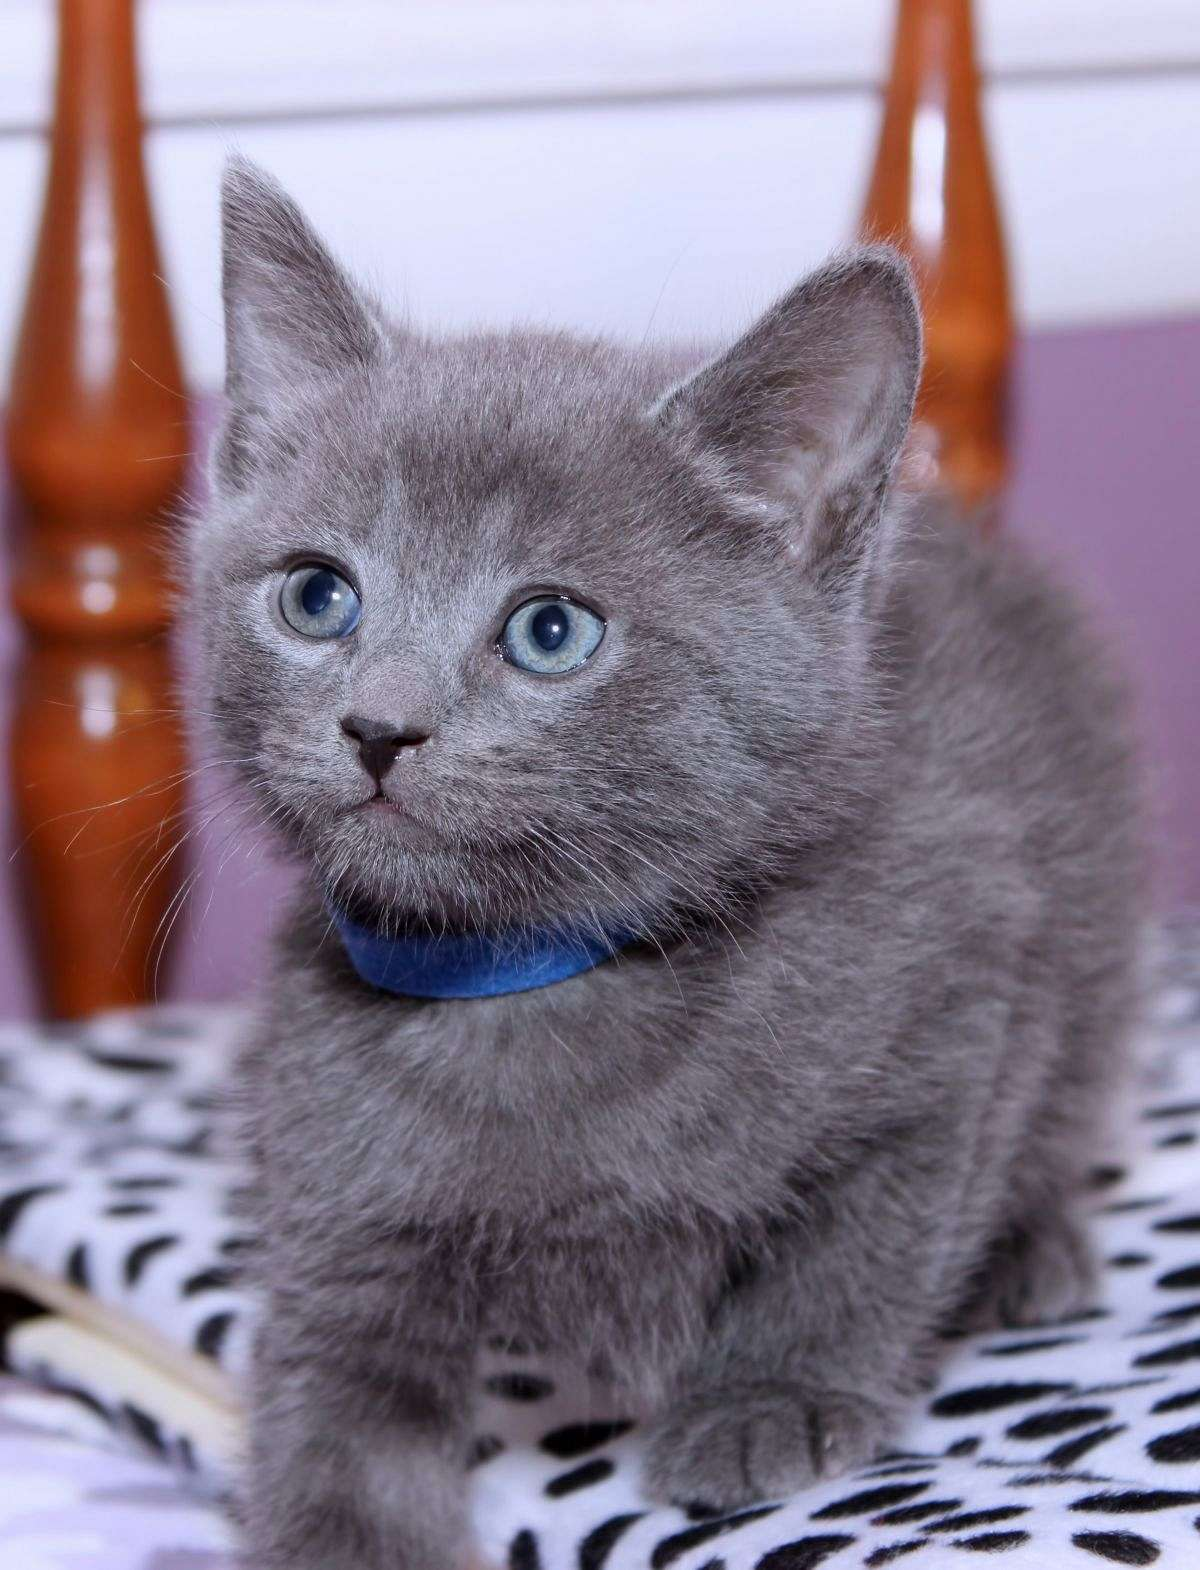 Purebred Russian Blue Kittens For Sale Near Me : purebred, russian, kittens, Russian, Purebred, Kittens, Online